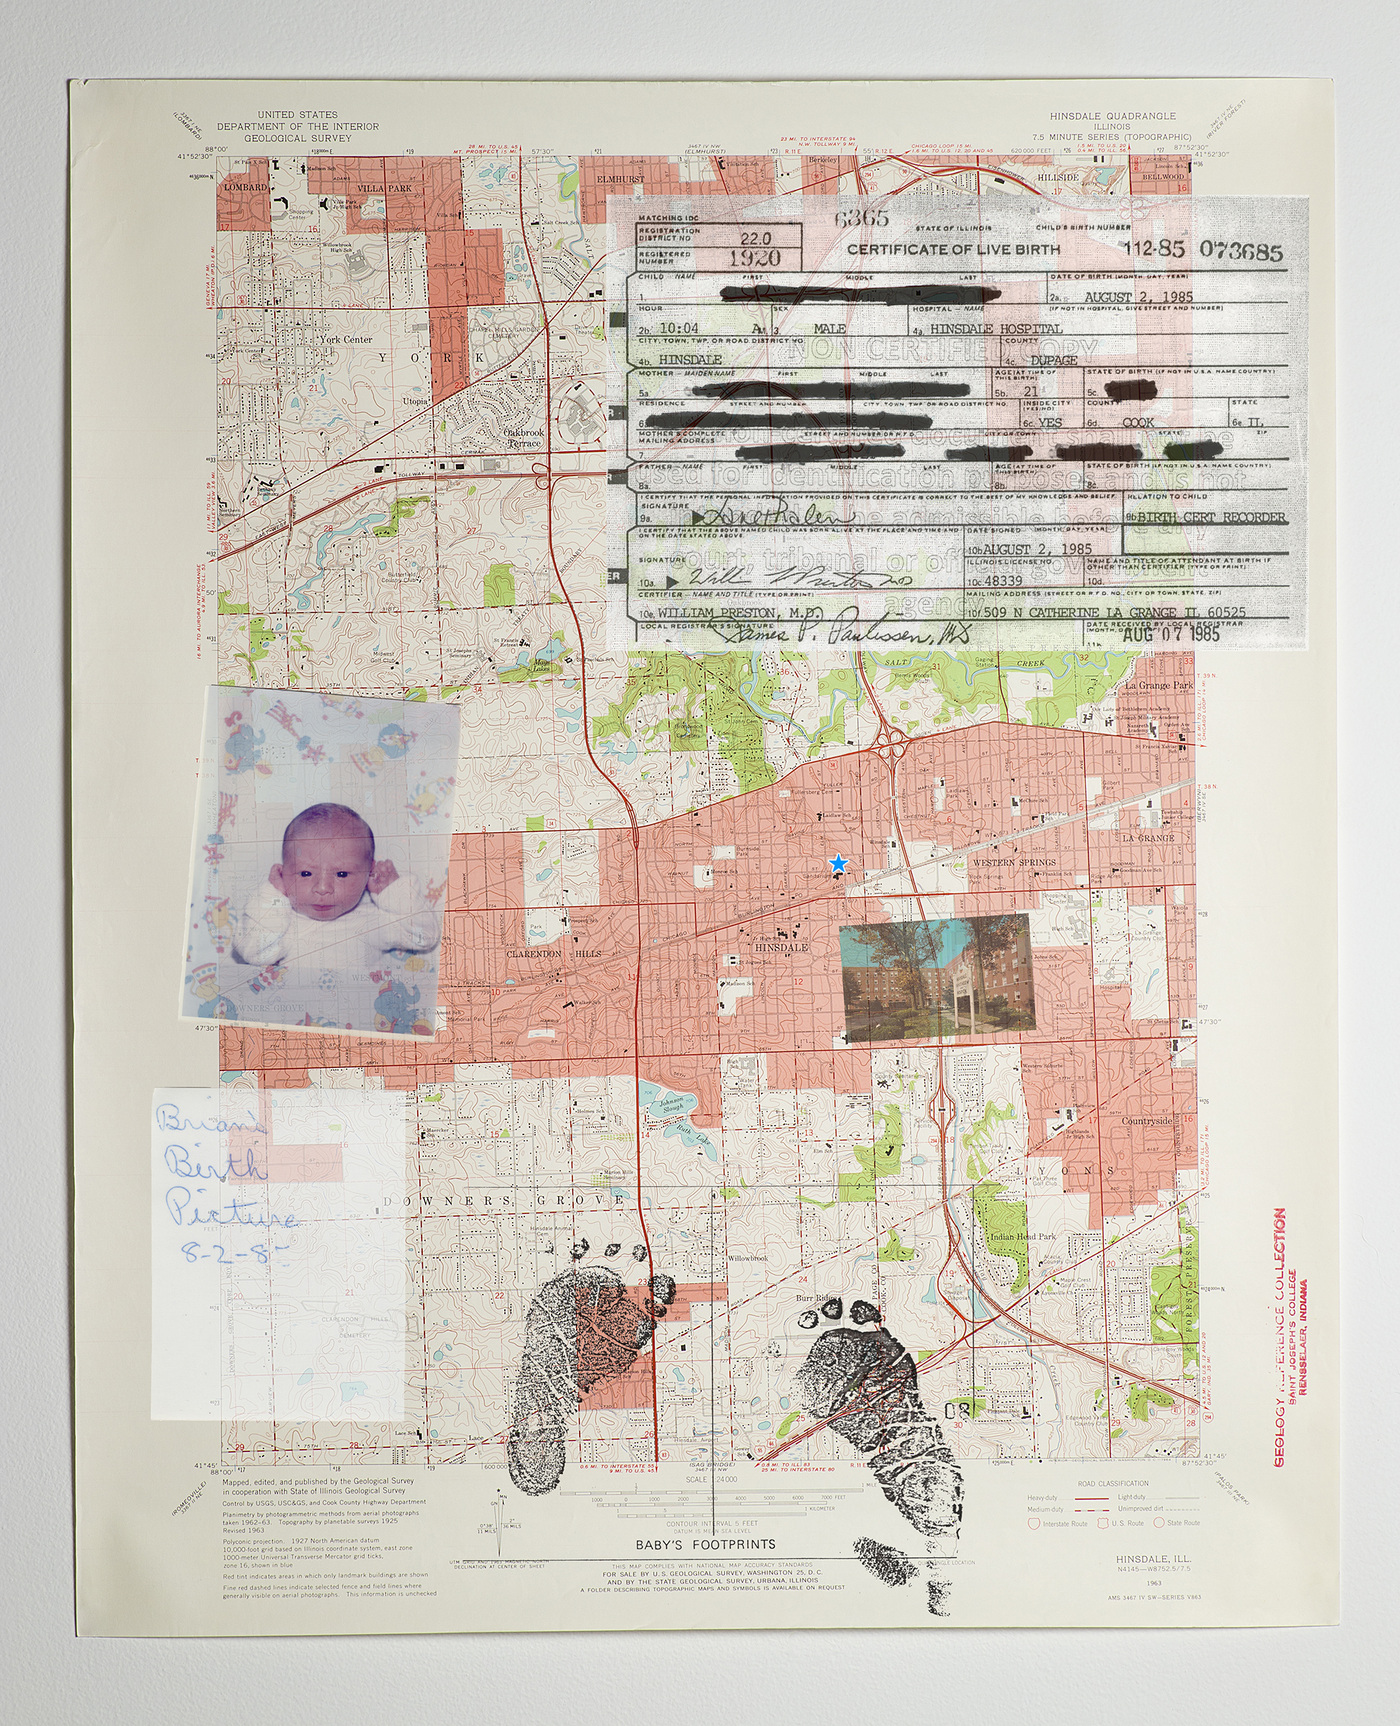 Brian Garbrecht - Hinsdale 2020. Family Archive and Documents Collaged onto Map.